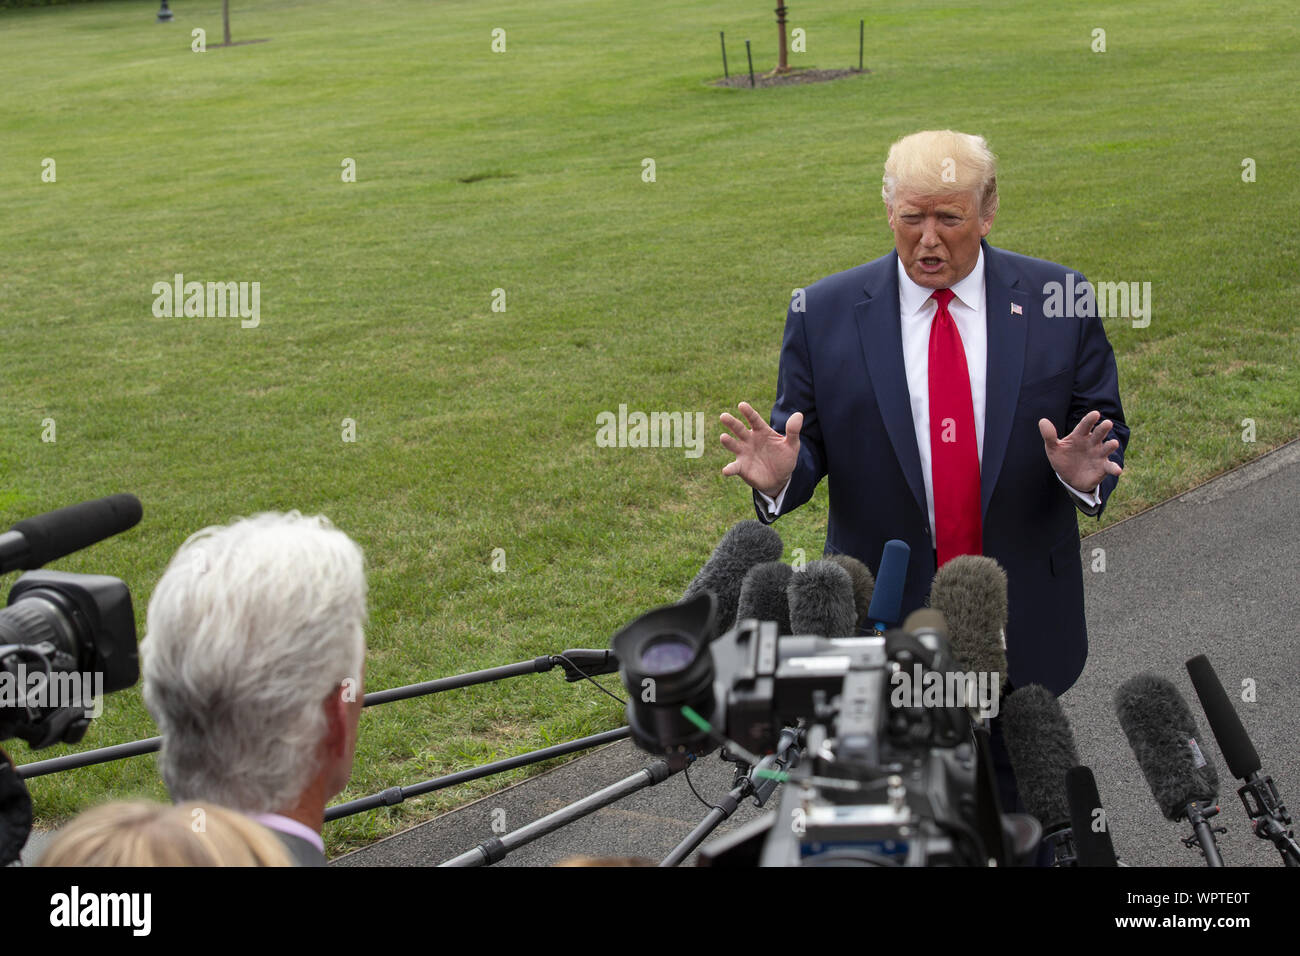 Washington, District of Columbia, USA. 9th Sep, 2019. United States President Donald J. Trump speaks to the press as he departs the White House in Washington, DC, U.S. for a rally in North Carolina on September 9, 2019. Credit: Stefani Reynolds/CNP/ZUMA Wire/Alamy Live News Stock Photo